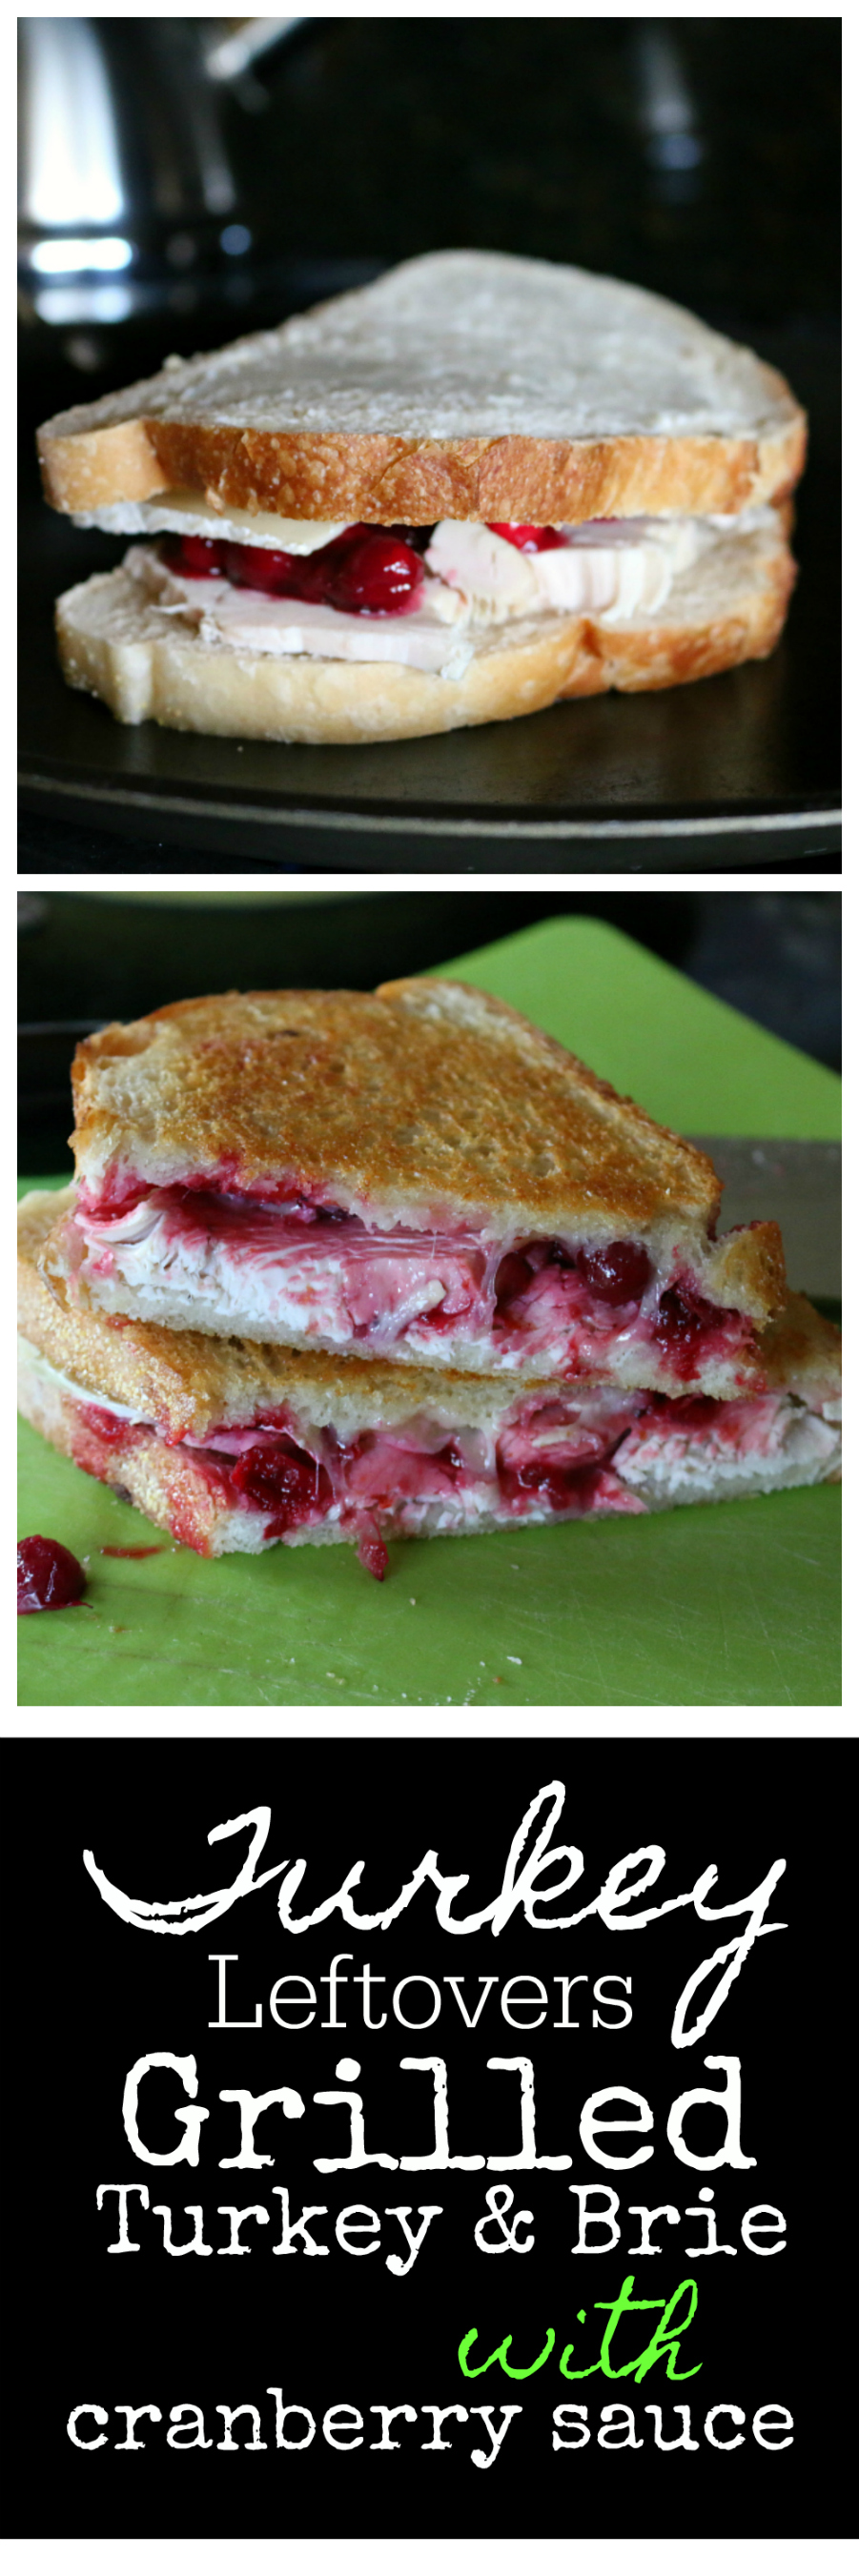 Grilled Turkey and Brie Sandwich with Cranberry Sauce Recipe